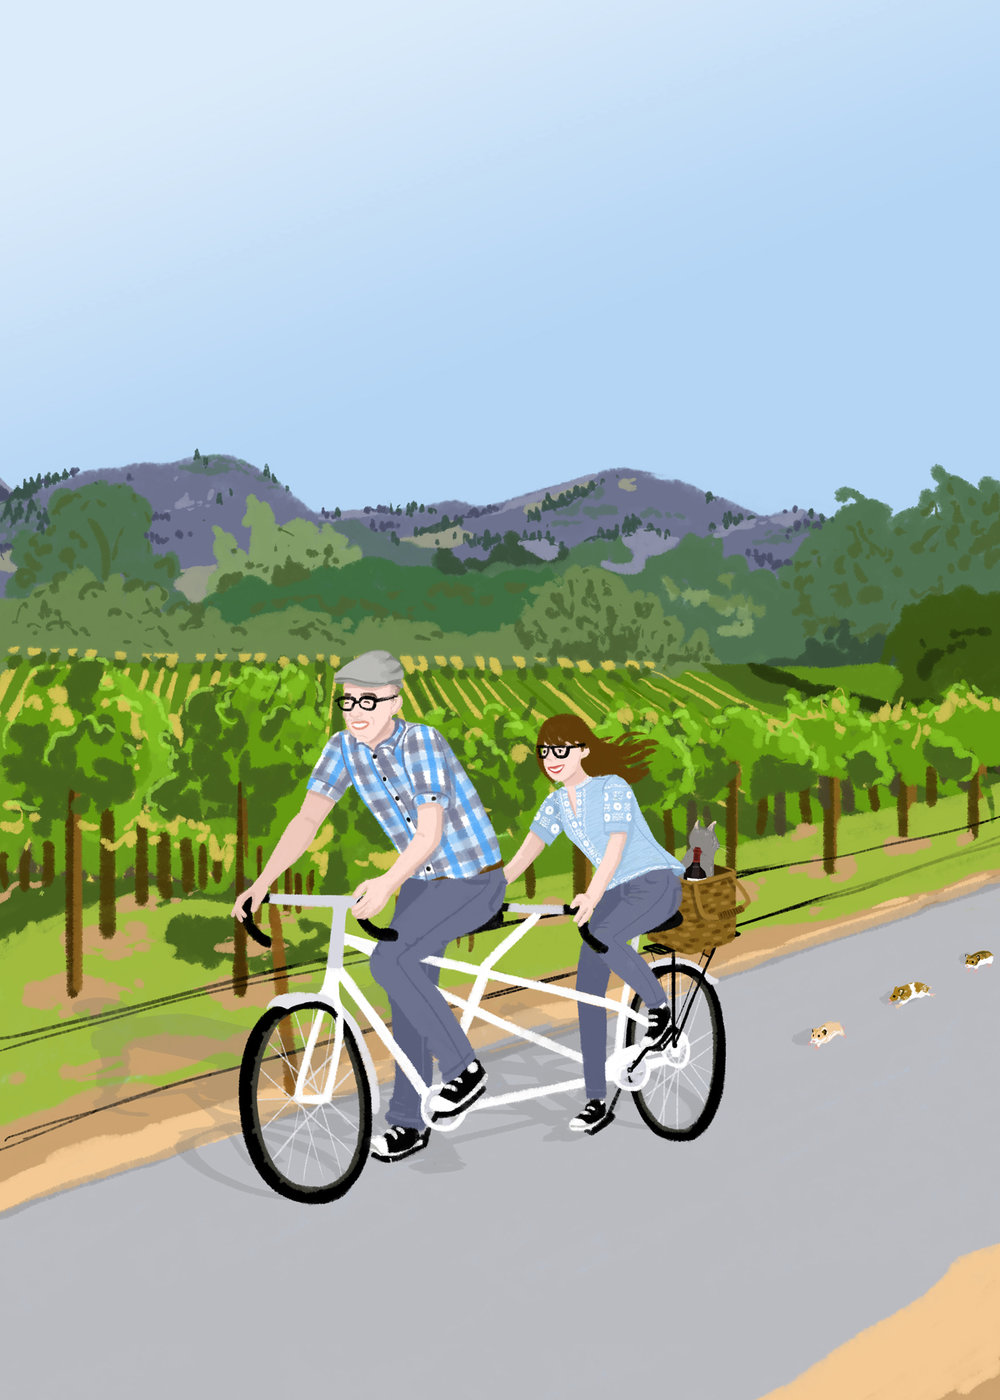 Jennifer + Robert | Jennifer commissioned this portrait of the couple biking through California wine country as a gift to her boyfriend. The couple are serious travelers and cyclists, wanted a casual, fun depiction and so were drawn in street wear on a tandem bicycle with Jennifer's cat Chianti hitching a ride on the back of the bike. The trail of hamsters is a silly inside joke  | Digital drawing, 5x7